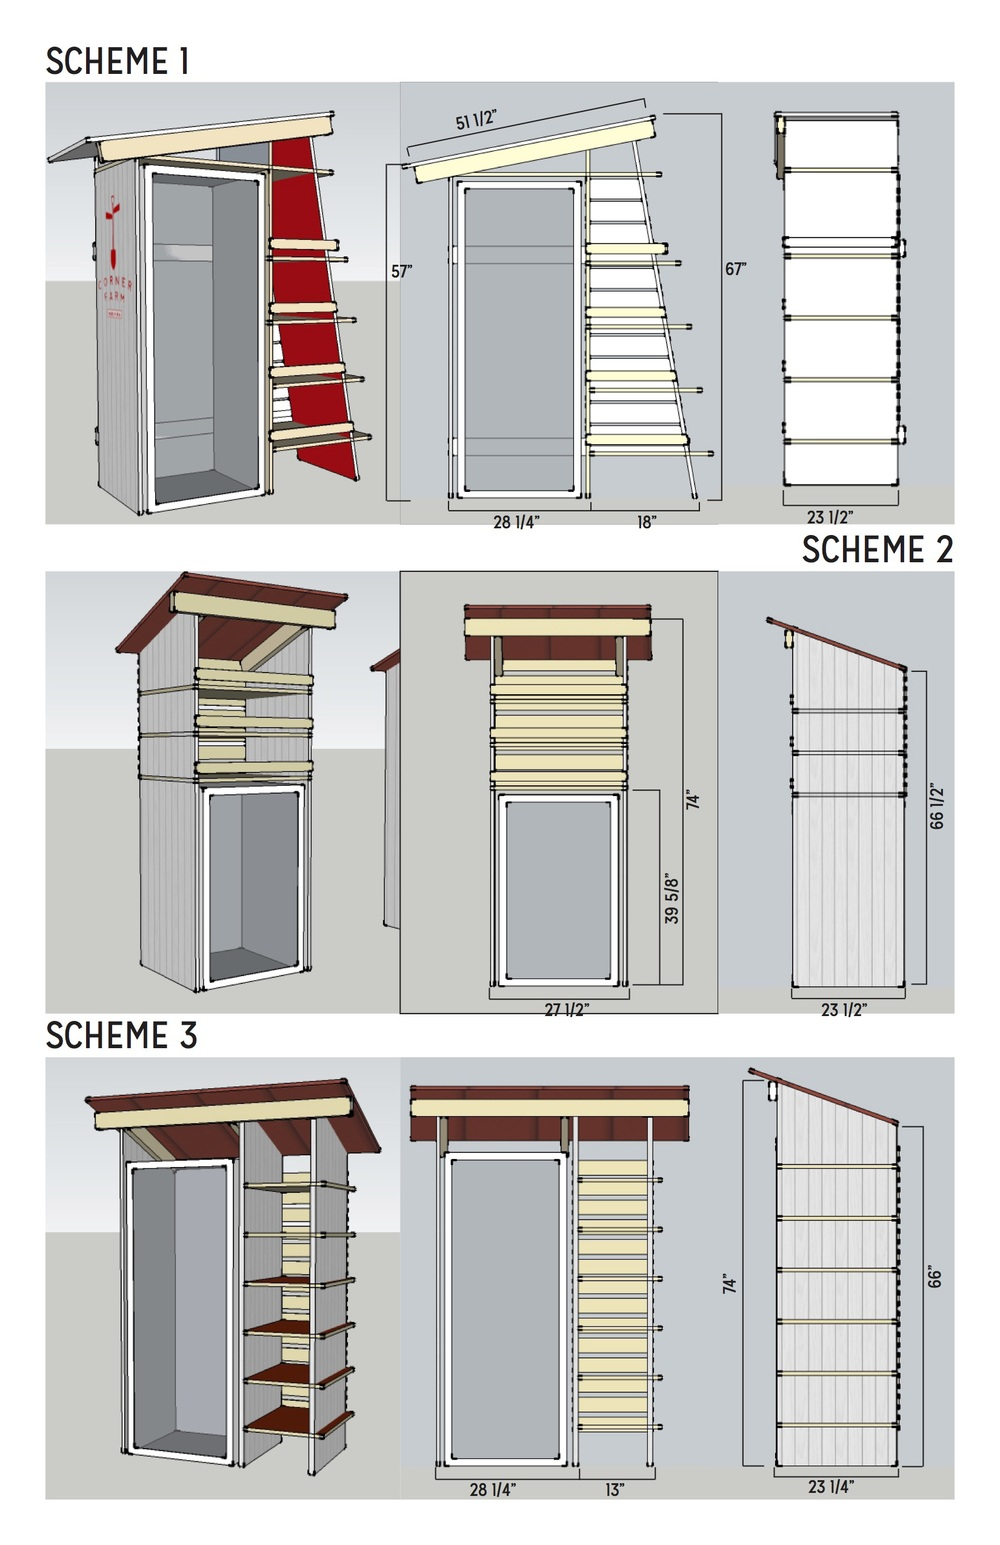 Through Storefront's Design Session, Brennan devised a scheme to create shelves around the coolers provided through the Corner Farm program.